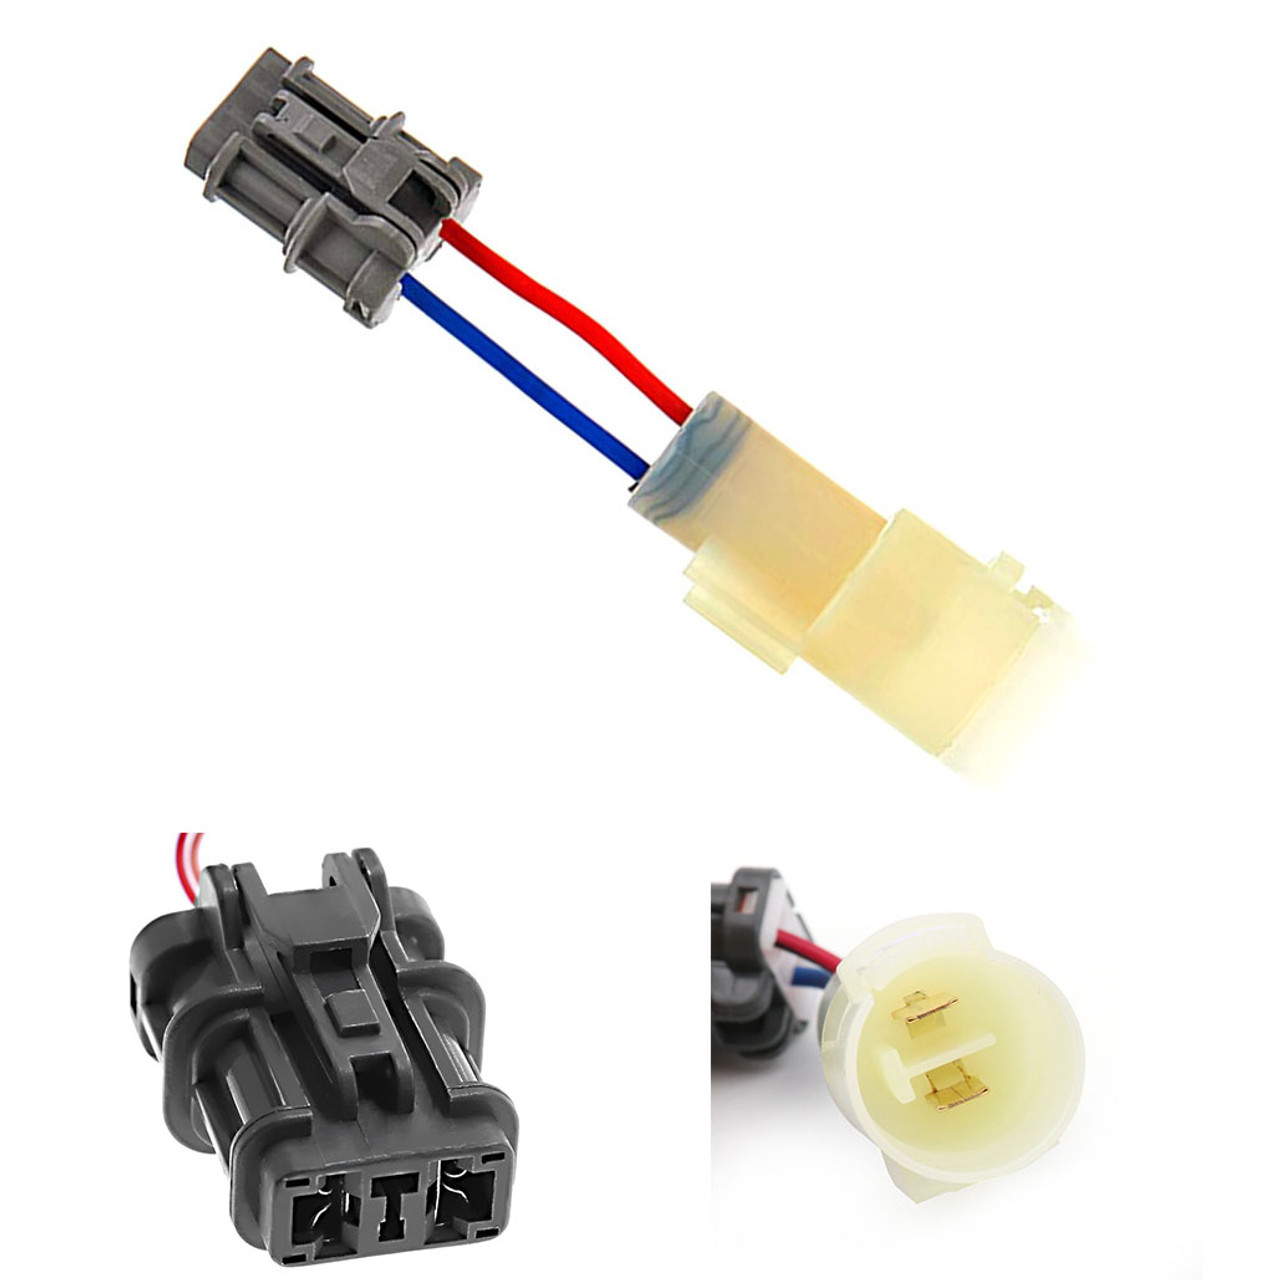 2 Wire OBD0 to OBD1 Distributor RPM Lead Signal Adapter Harness for Obd Wire Harness on obd2 wire harness, ford wire harness, automobile wire harness, obd2b wire harness, bosch wire harness, engine wire harness, crx wire harness, vtec wire harness, 2jz wire harness, honda wire harness,